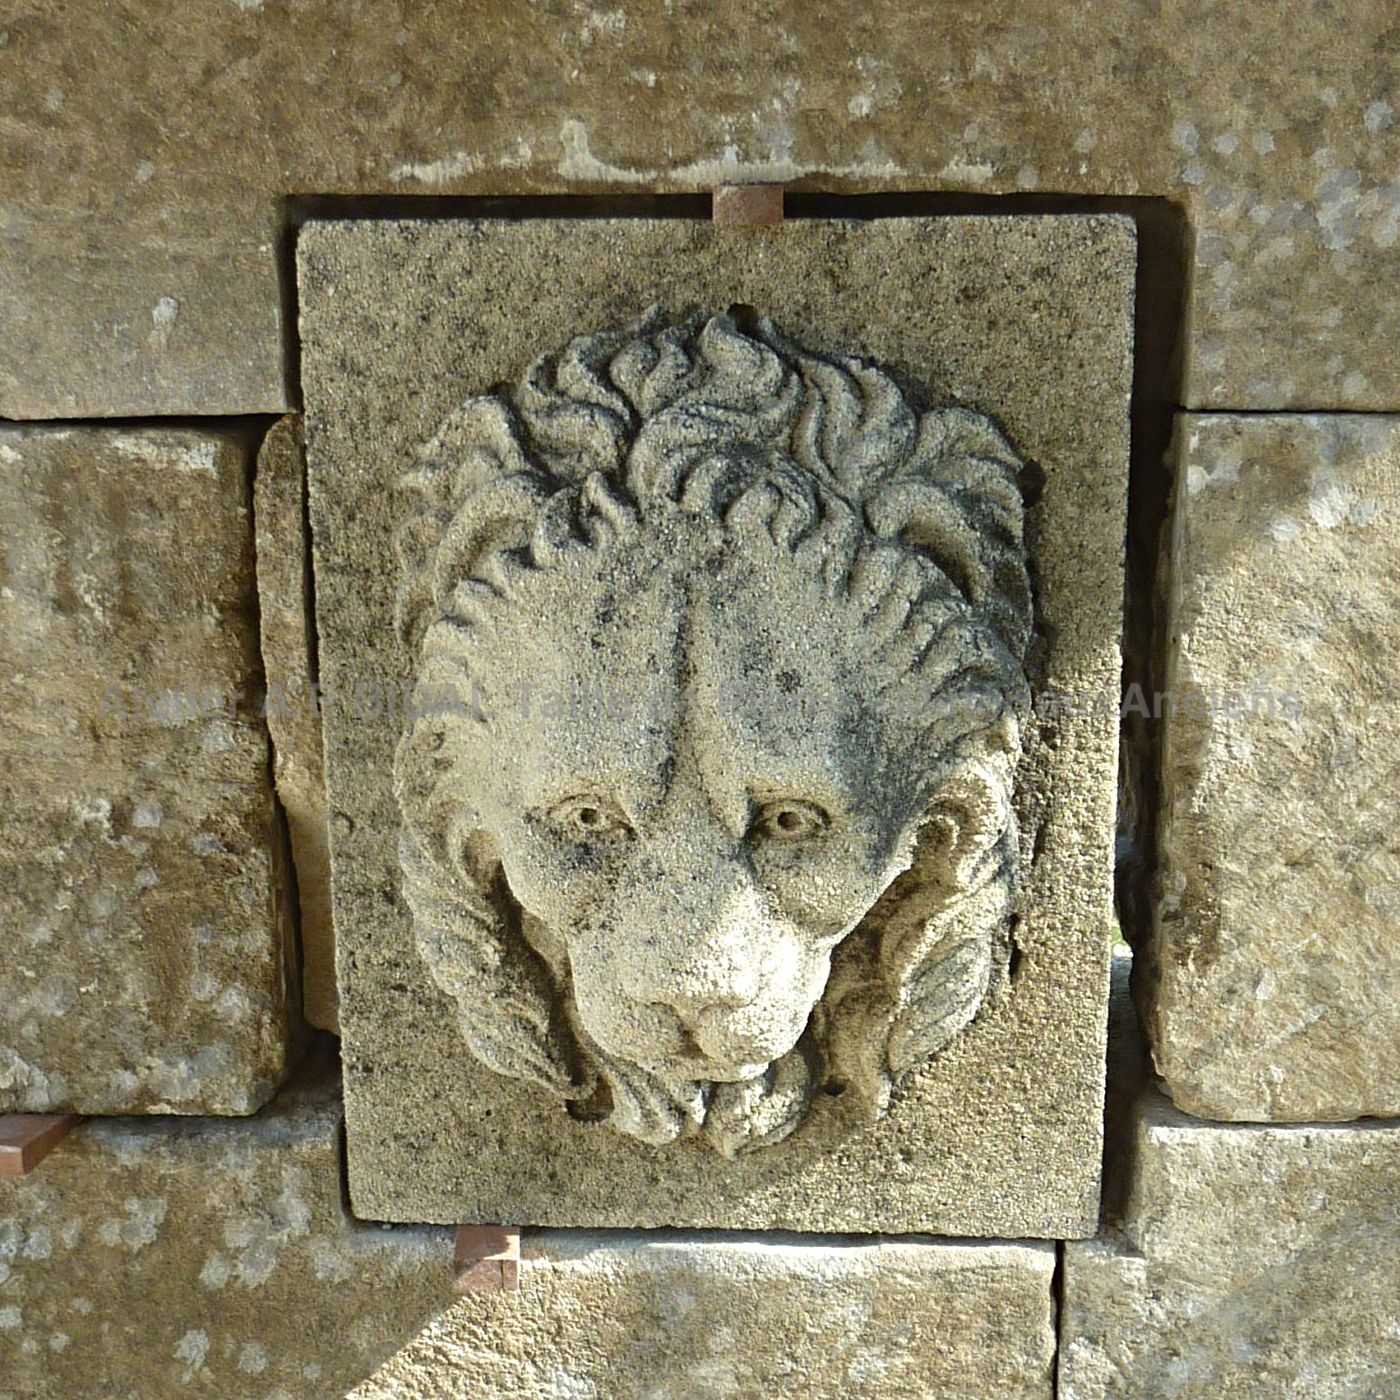 Ancient fountain with lion's head carved in stone as water outlets | Fountain with roof for sale in Provence at BIDAL.